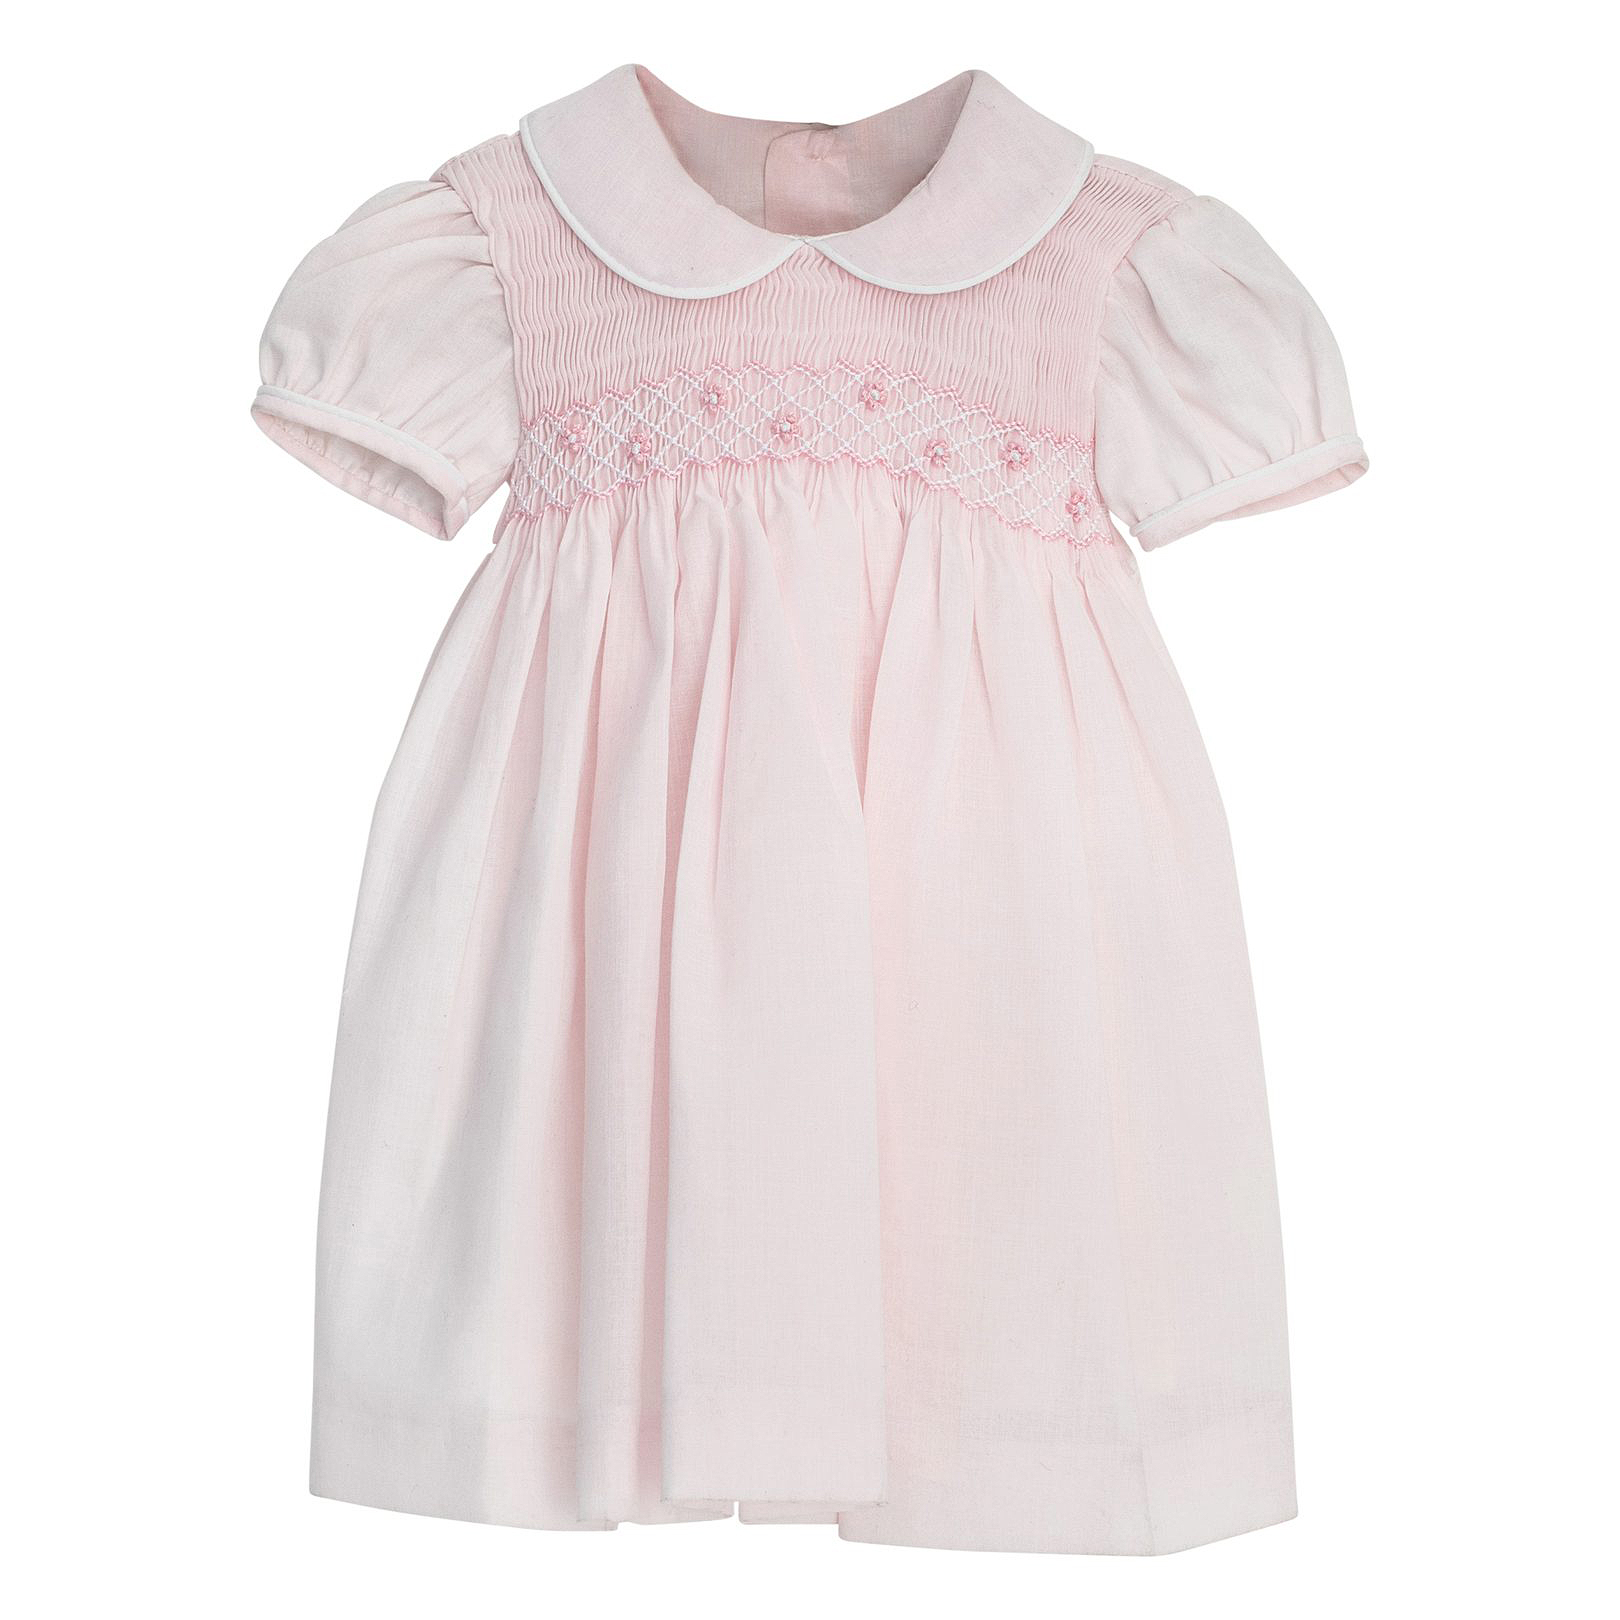 pink flower girl dress white collar